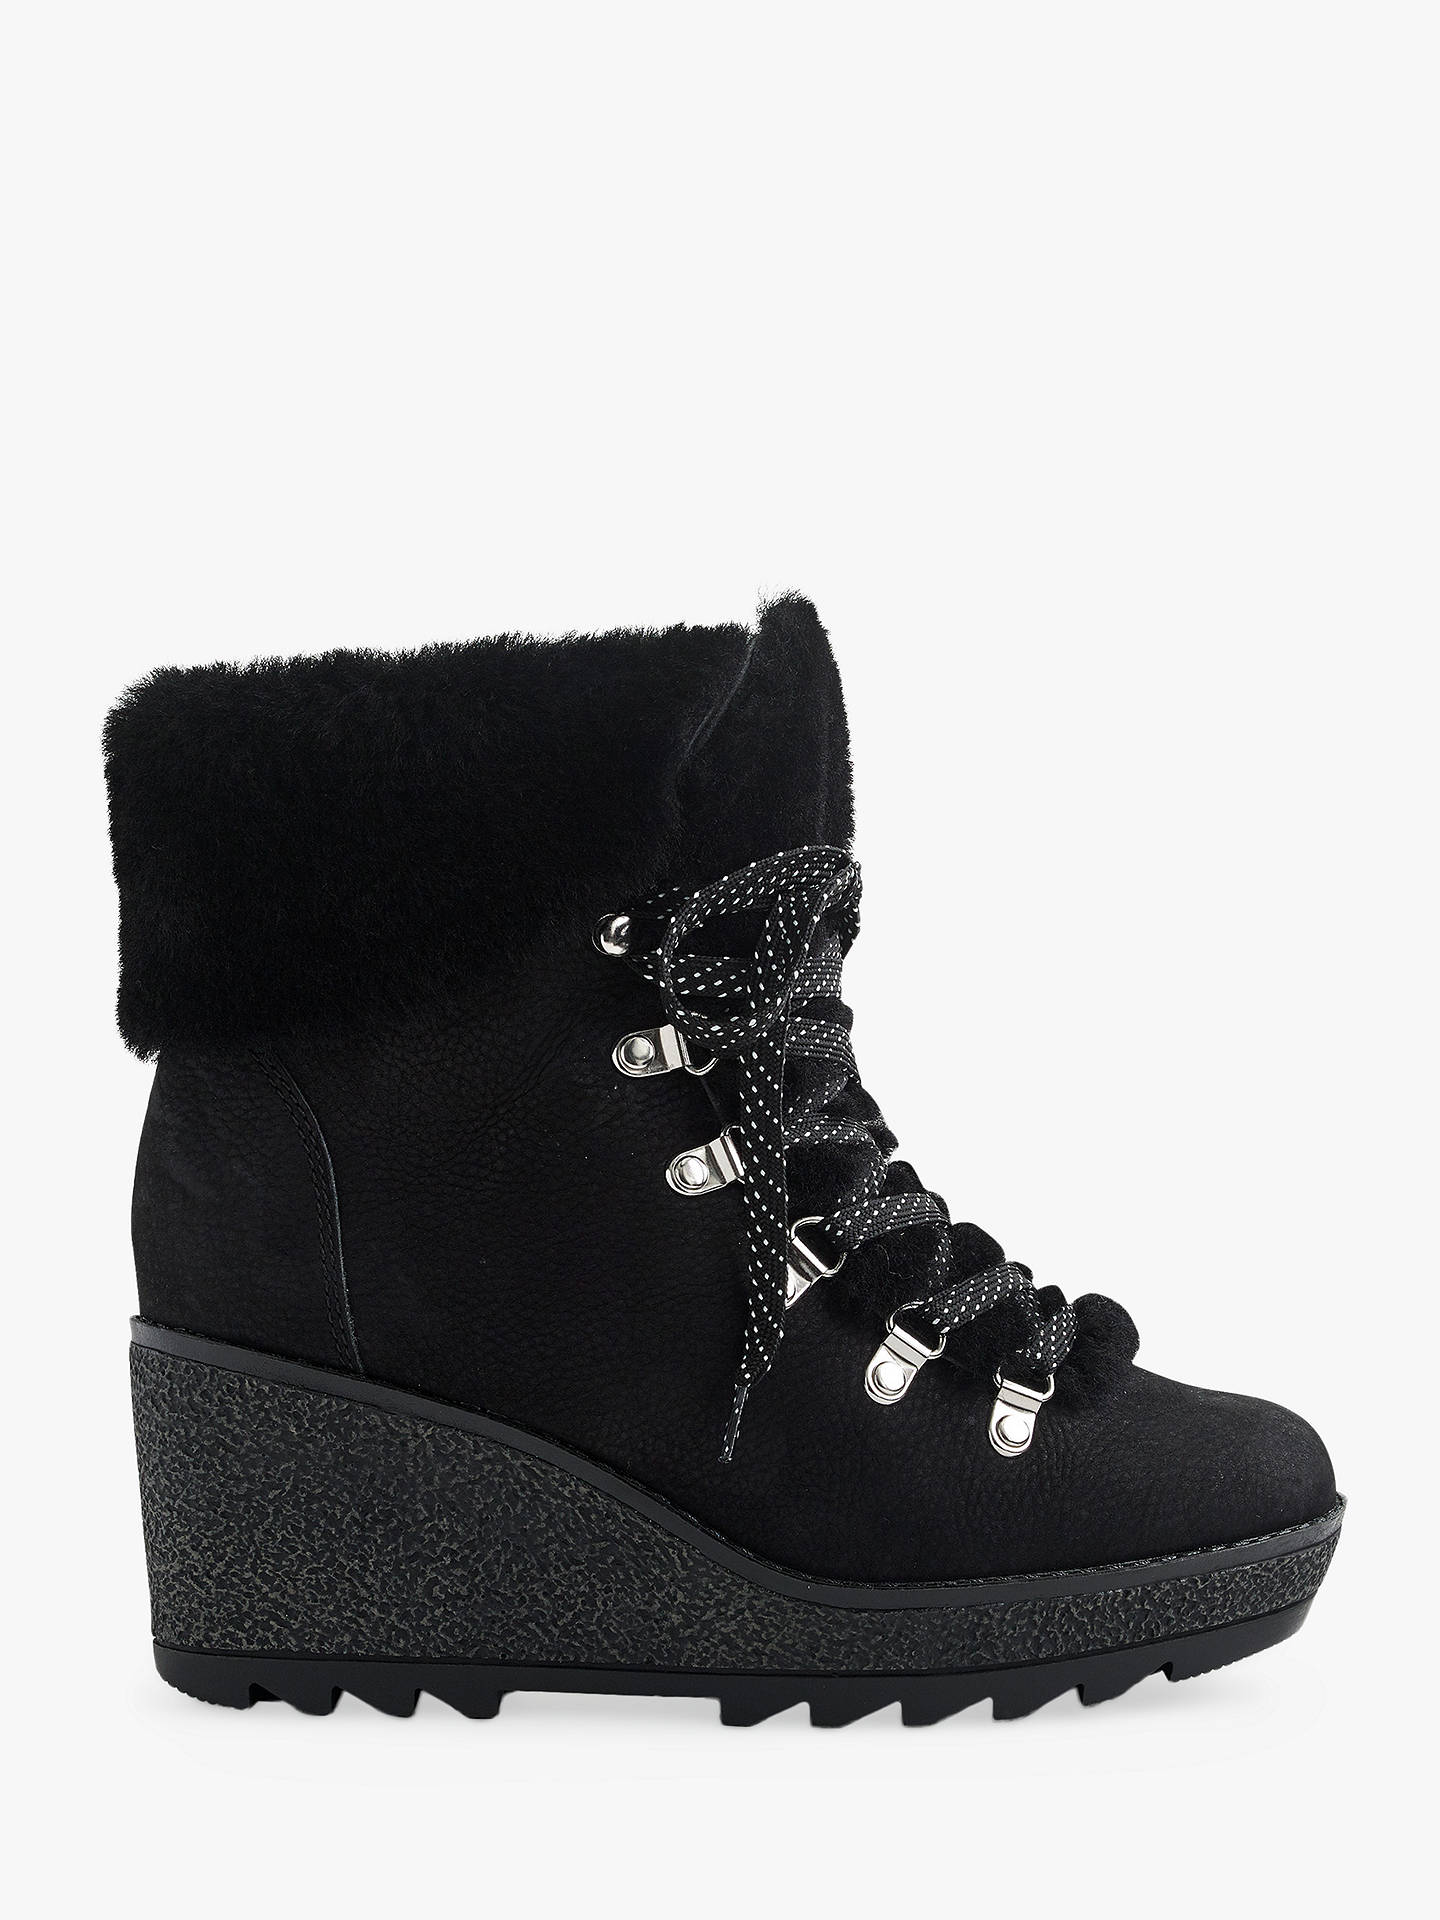 6d5bdb7001b Buy J.Crew Nordic Lace Up Wedge Ankle Boots